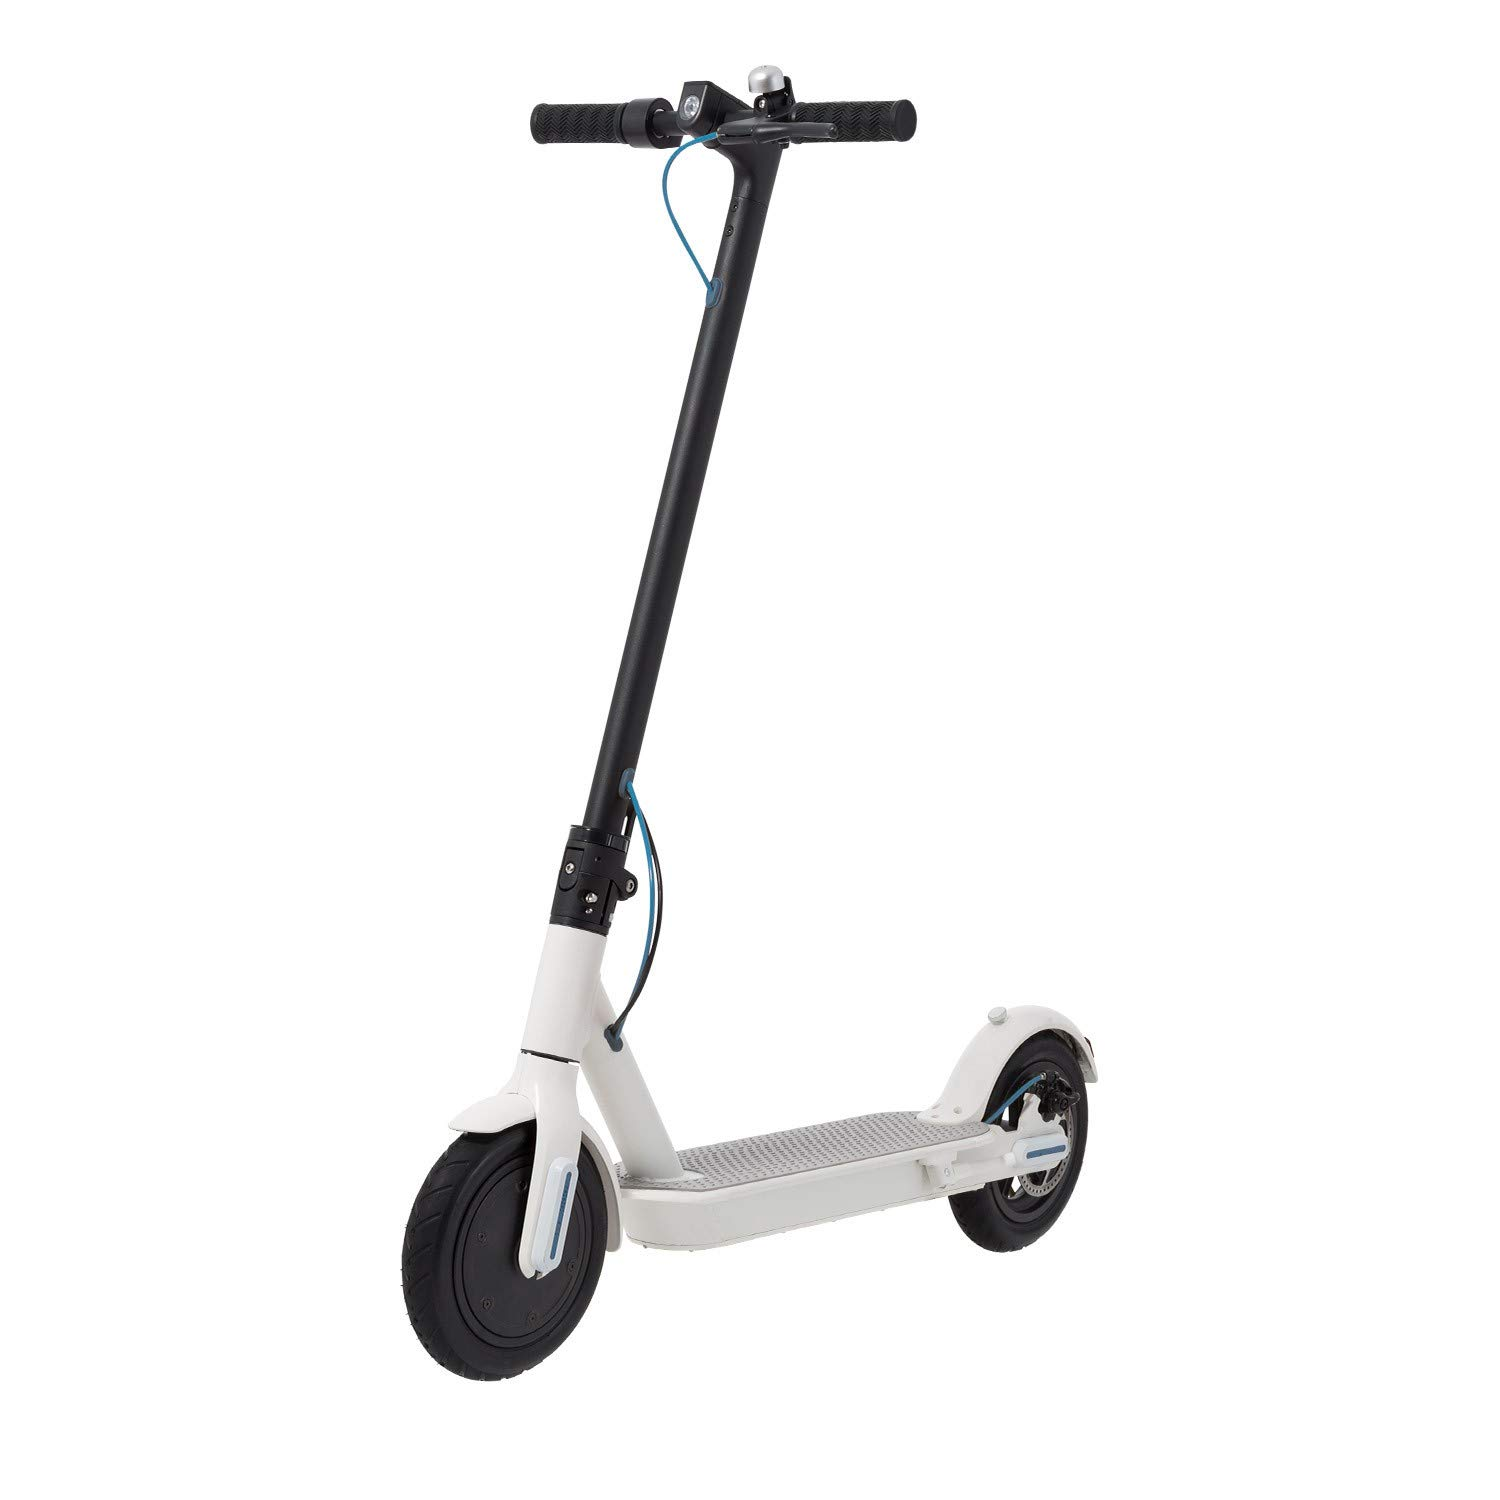 Ecogyro GScooter S9 – Patinete Eléctrico Blanco 250W 7.8Ah 25Km/h 25Km